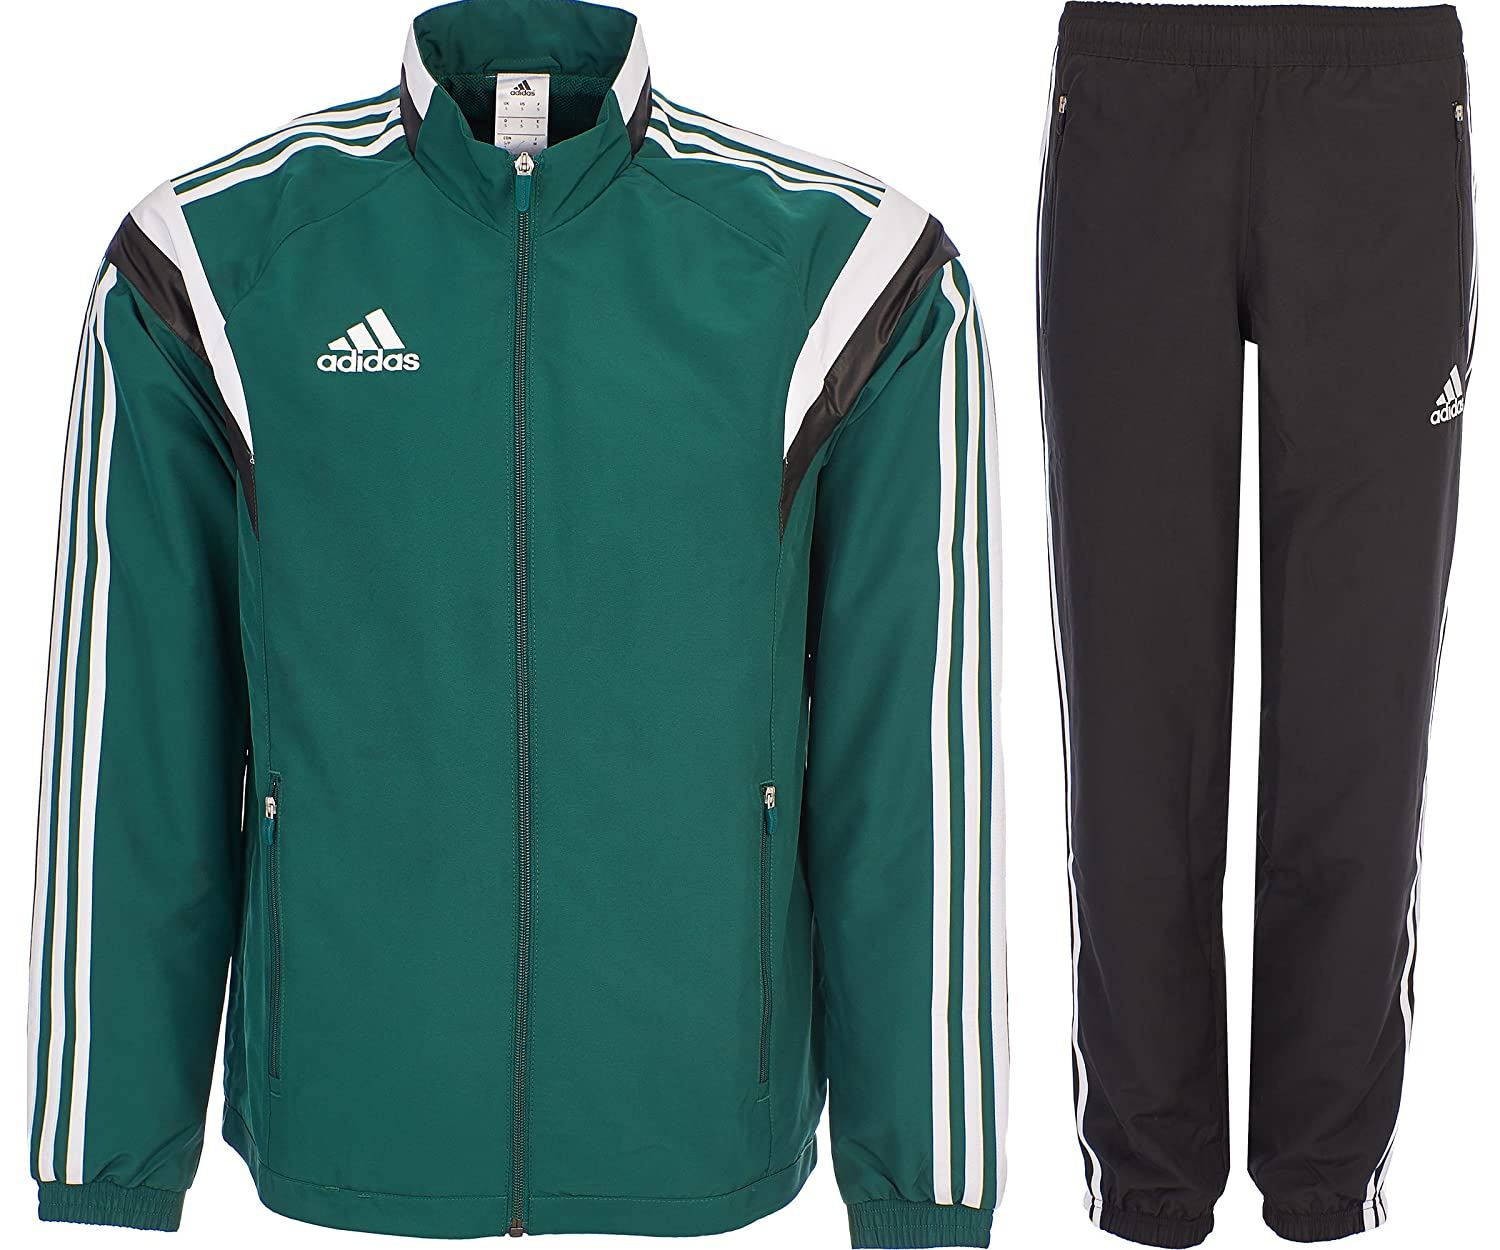 Adidas Tracksuit Woven Soccer RefSuit Track Top Pants Training Black/Green G90430